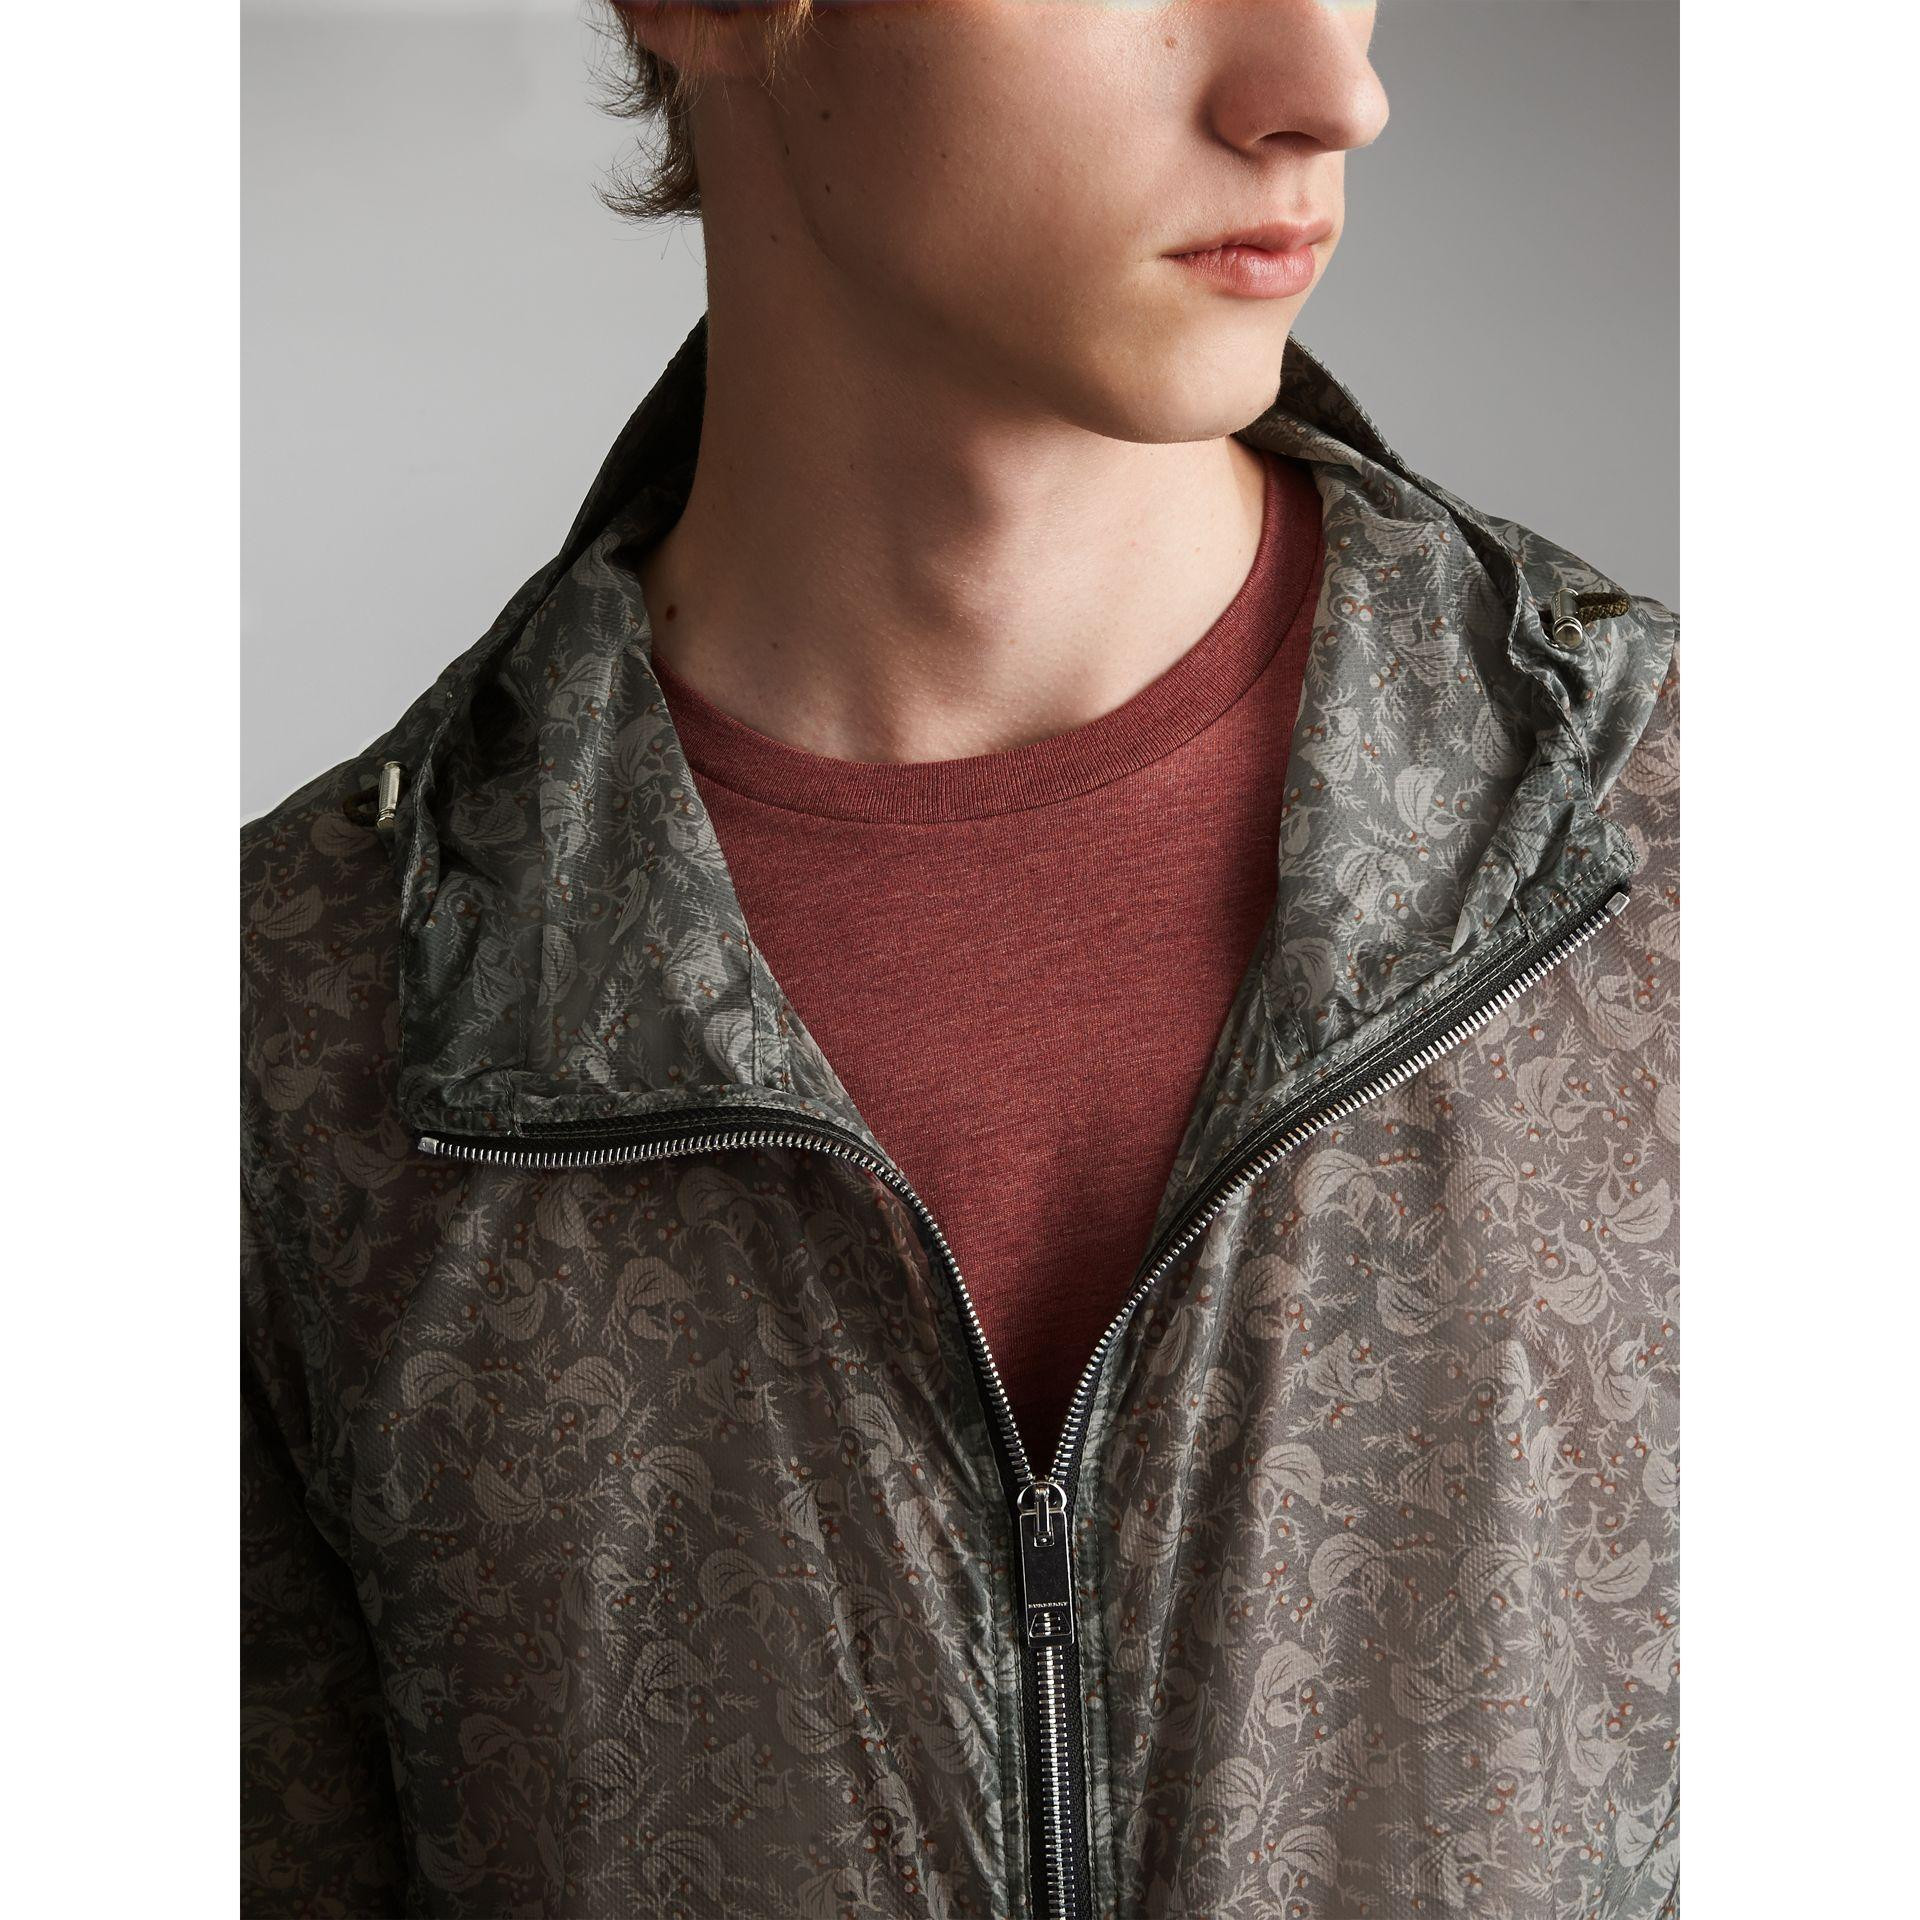 Burberry Synthetic Leaf Pattern Hooded Ultra-lightweight Jacket in Blue Grey (Grey) for Men